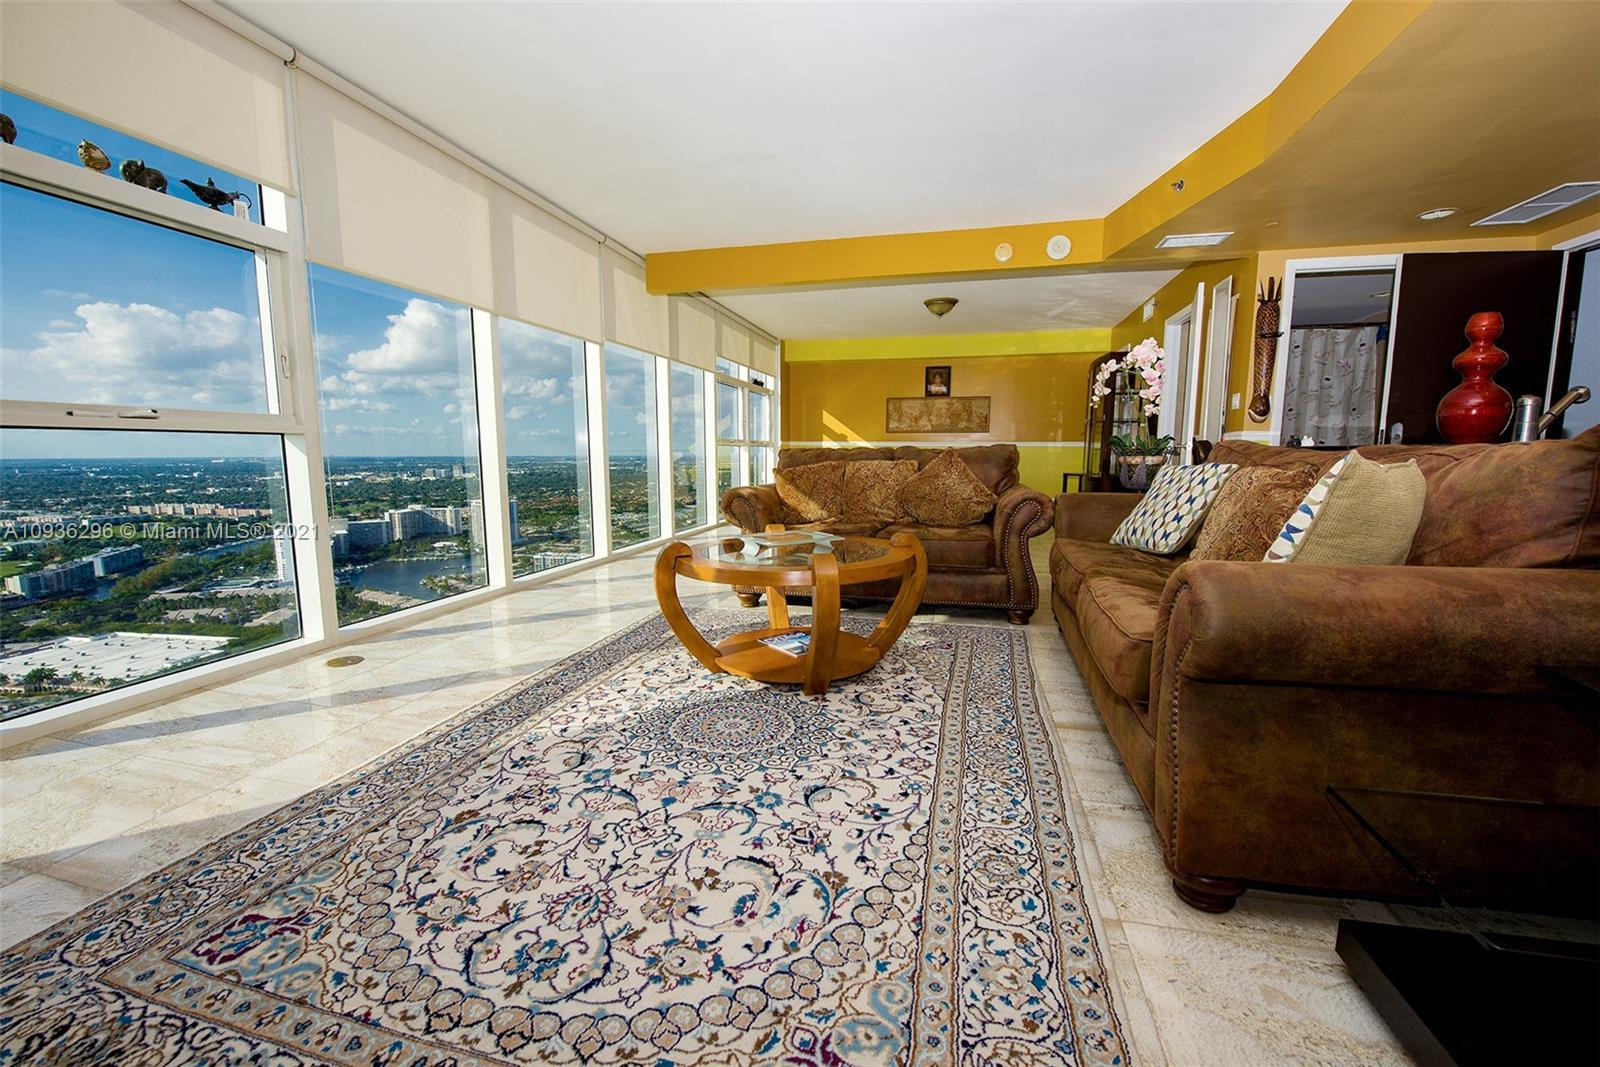 Penthouse with High Ceiling  * Furnished    * Marble Floors All Throughout  * High 12 Feet Ceiling